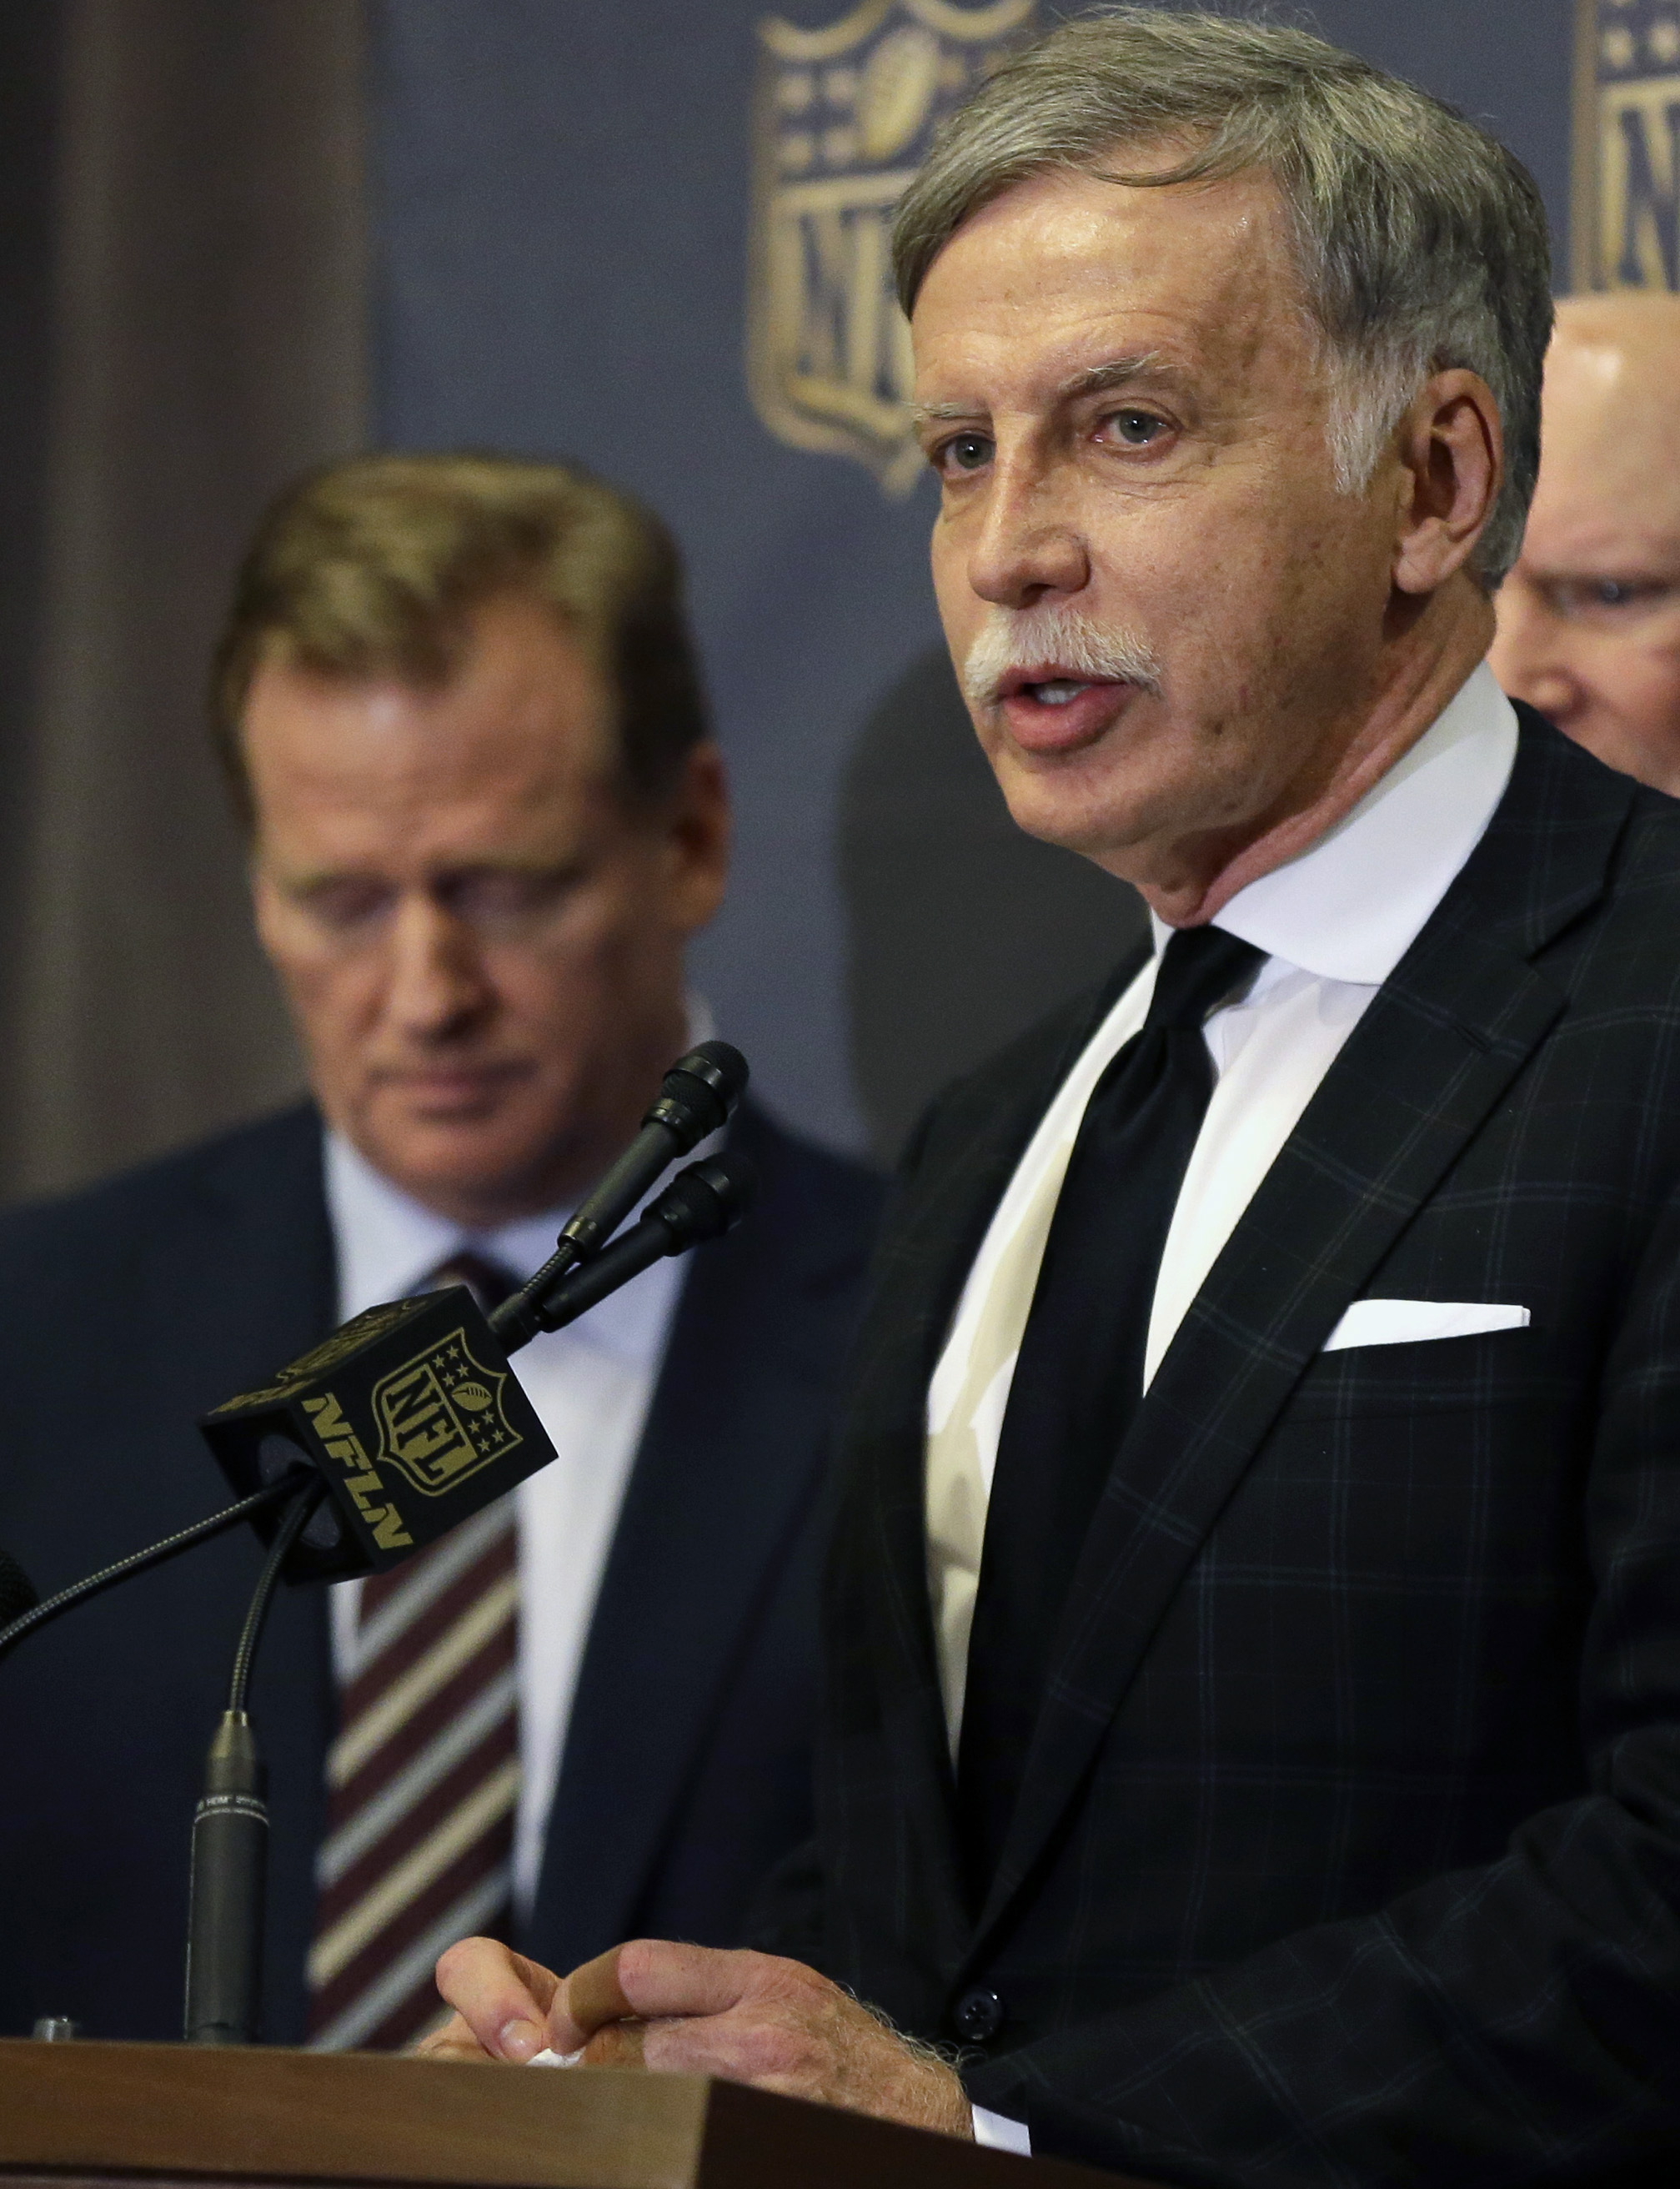 NFL Commissioner Roger Goodell, left, looks down as St. Louis Rams owner Stan Kroenke talks to the media after team owners voted Tuesday, Jan. 12, 2016, in Houston to allow the Rams to move to a new stadium just outside Los Angeles, and the San Diego Char